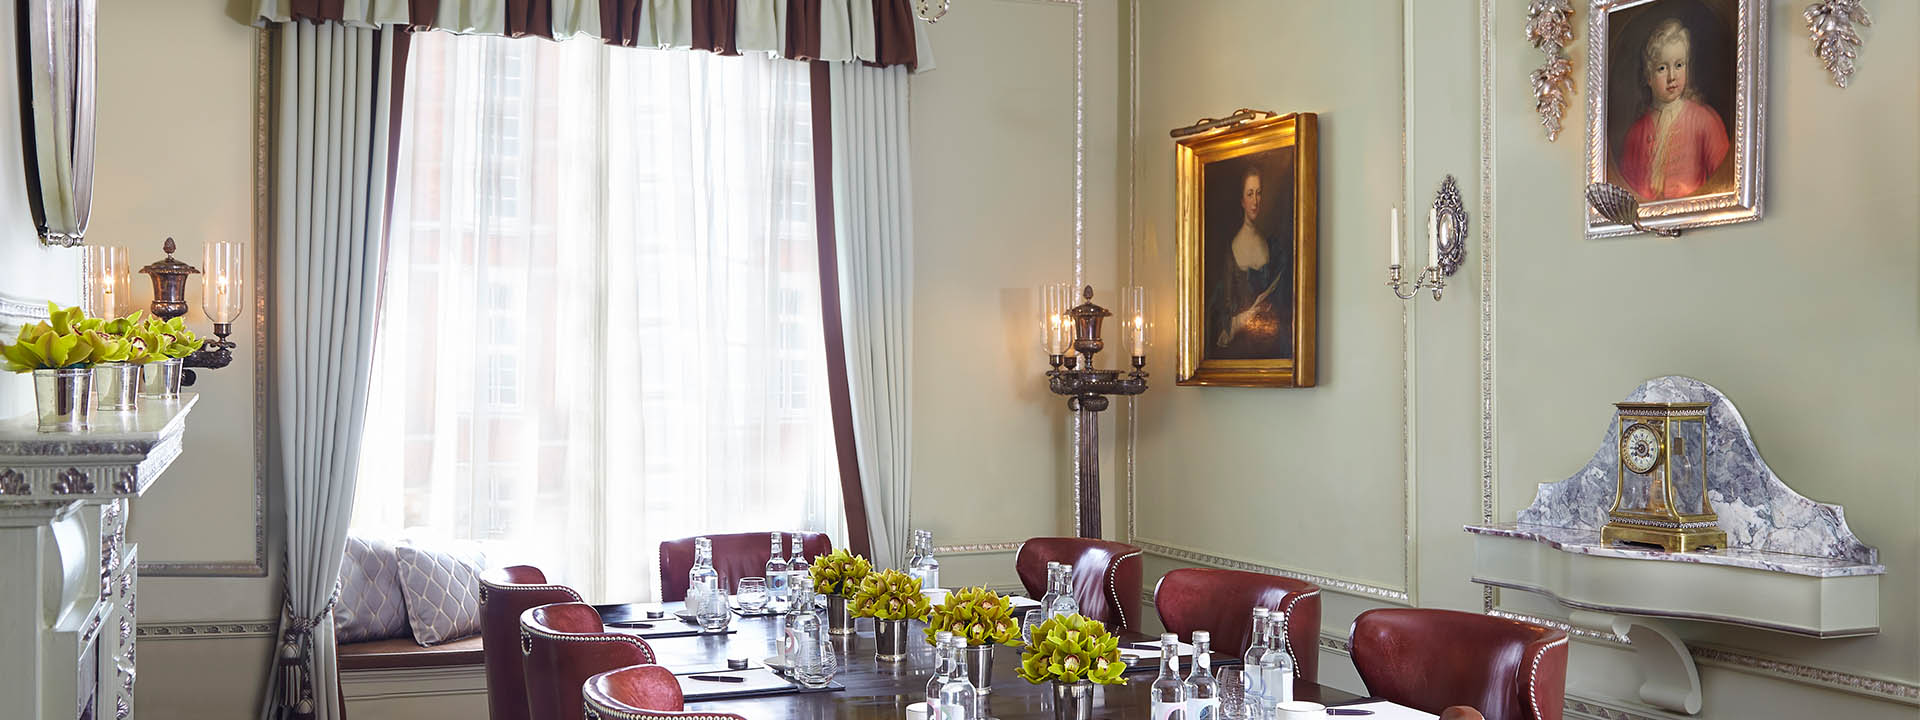 The Georgian room at The Connaught set up for a meeting